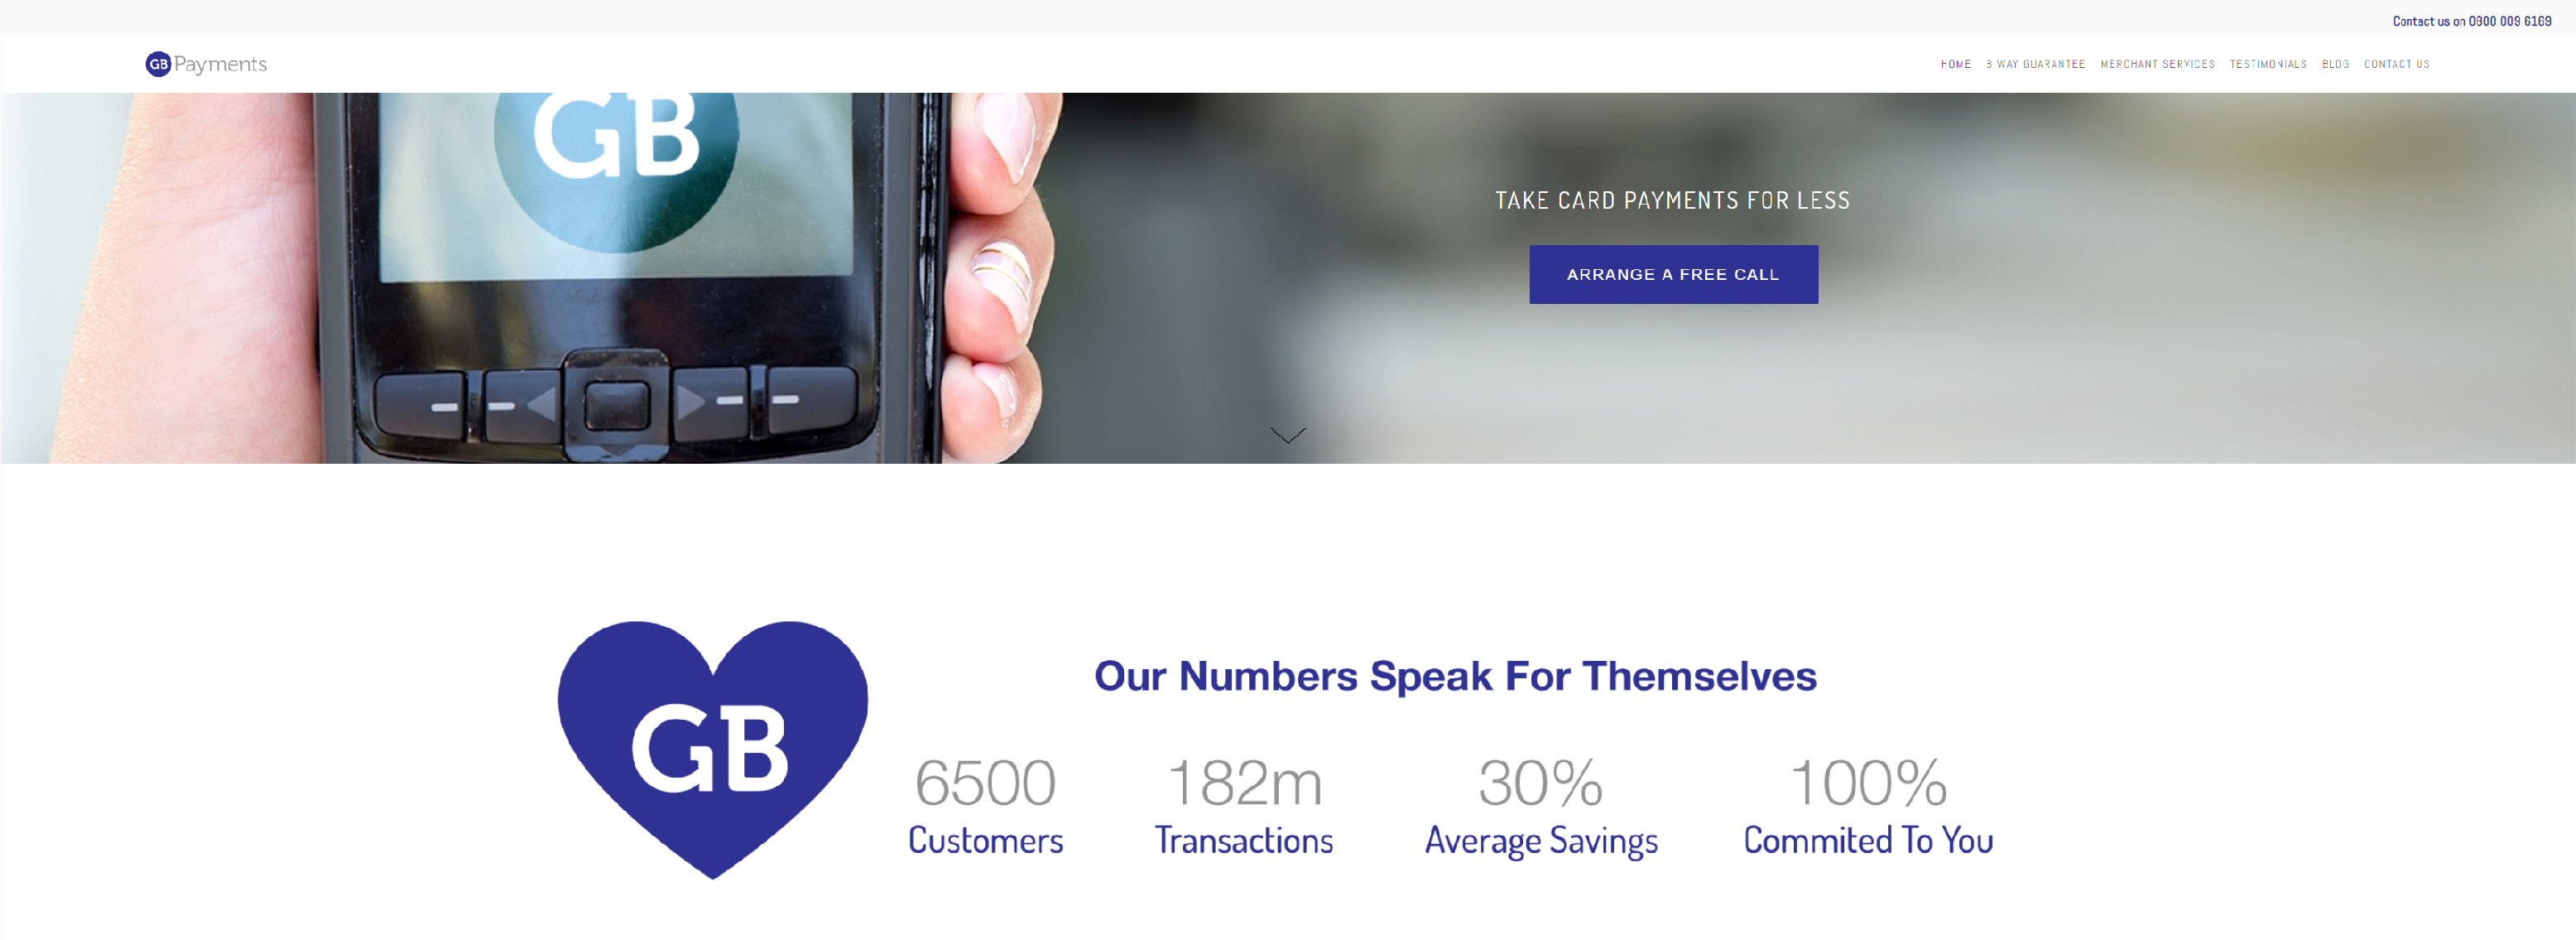 Top 7 Best Merchant Credit Card Processing Companies List For Small Businesses 2021 Cllax Top Of It